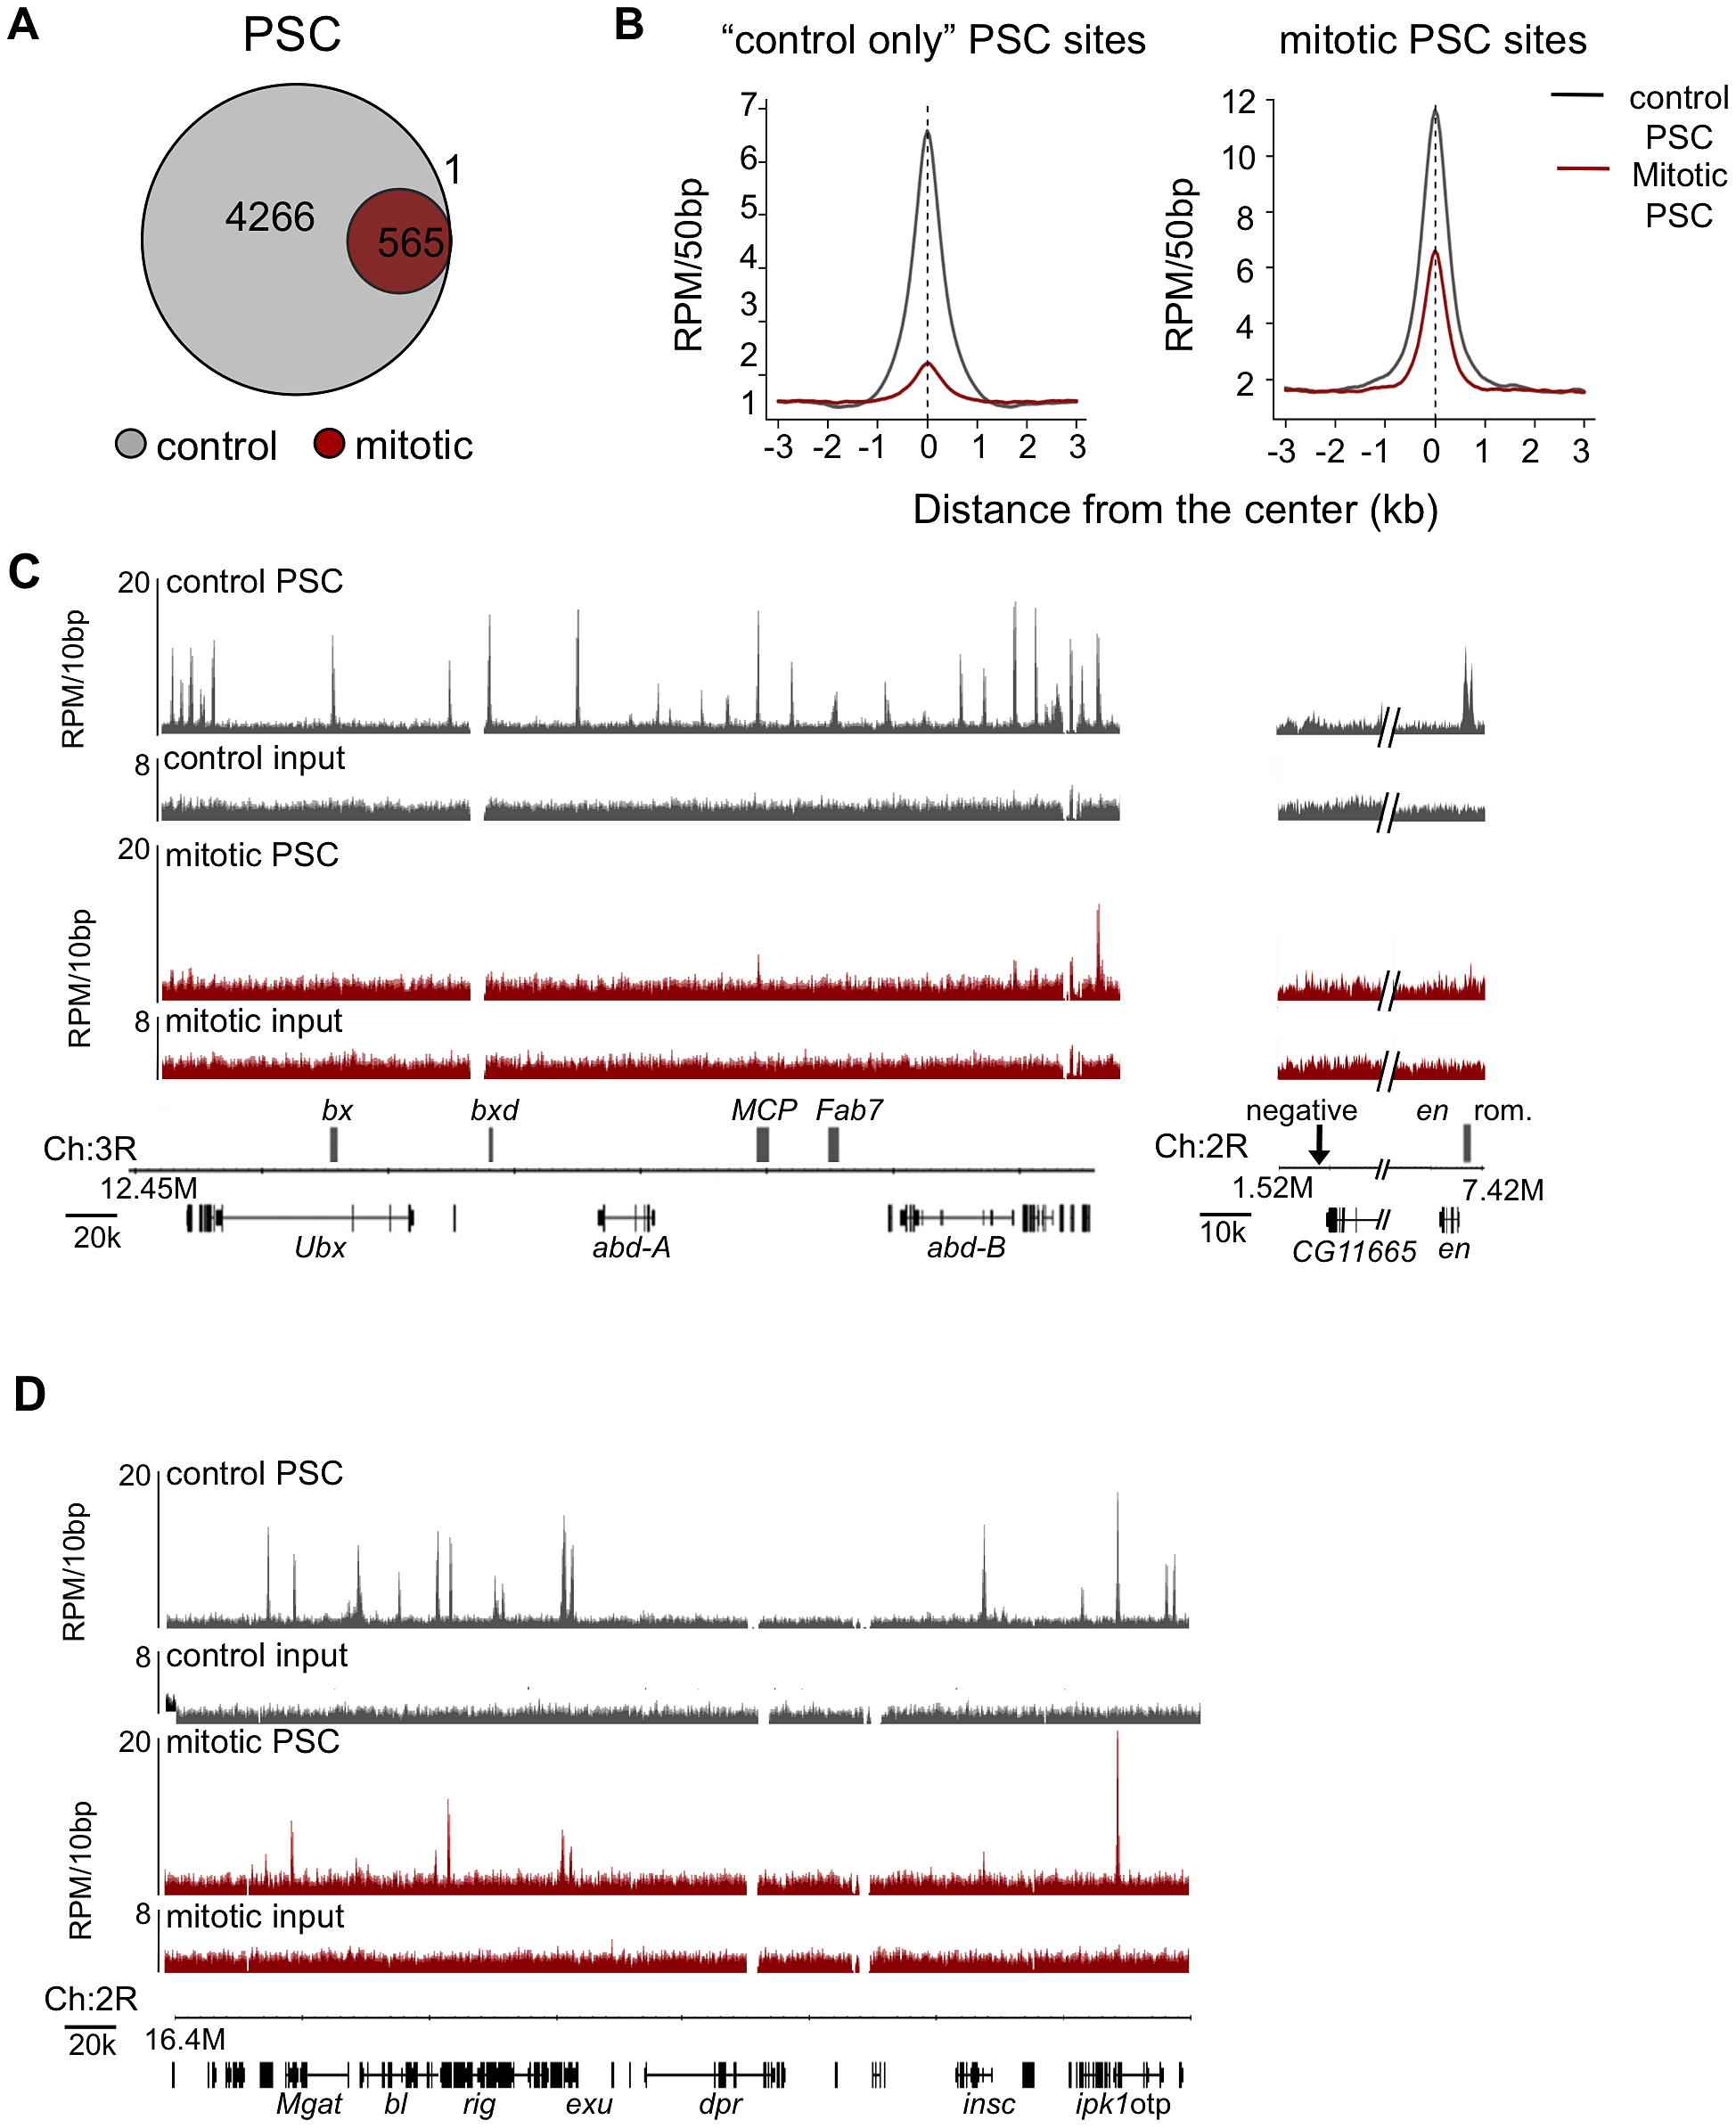 Genome-wide analysis reveals PSC is retained at specific sites on mitotic chromosomes.